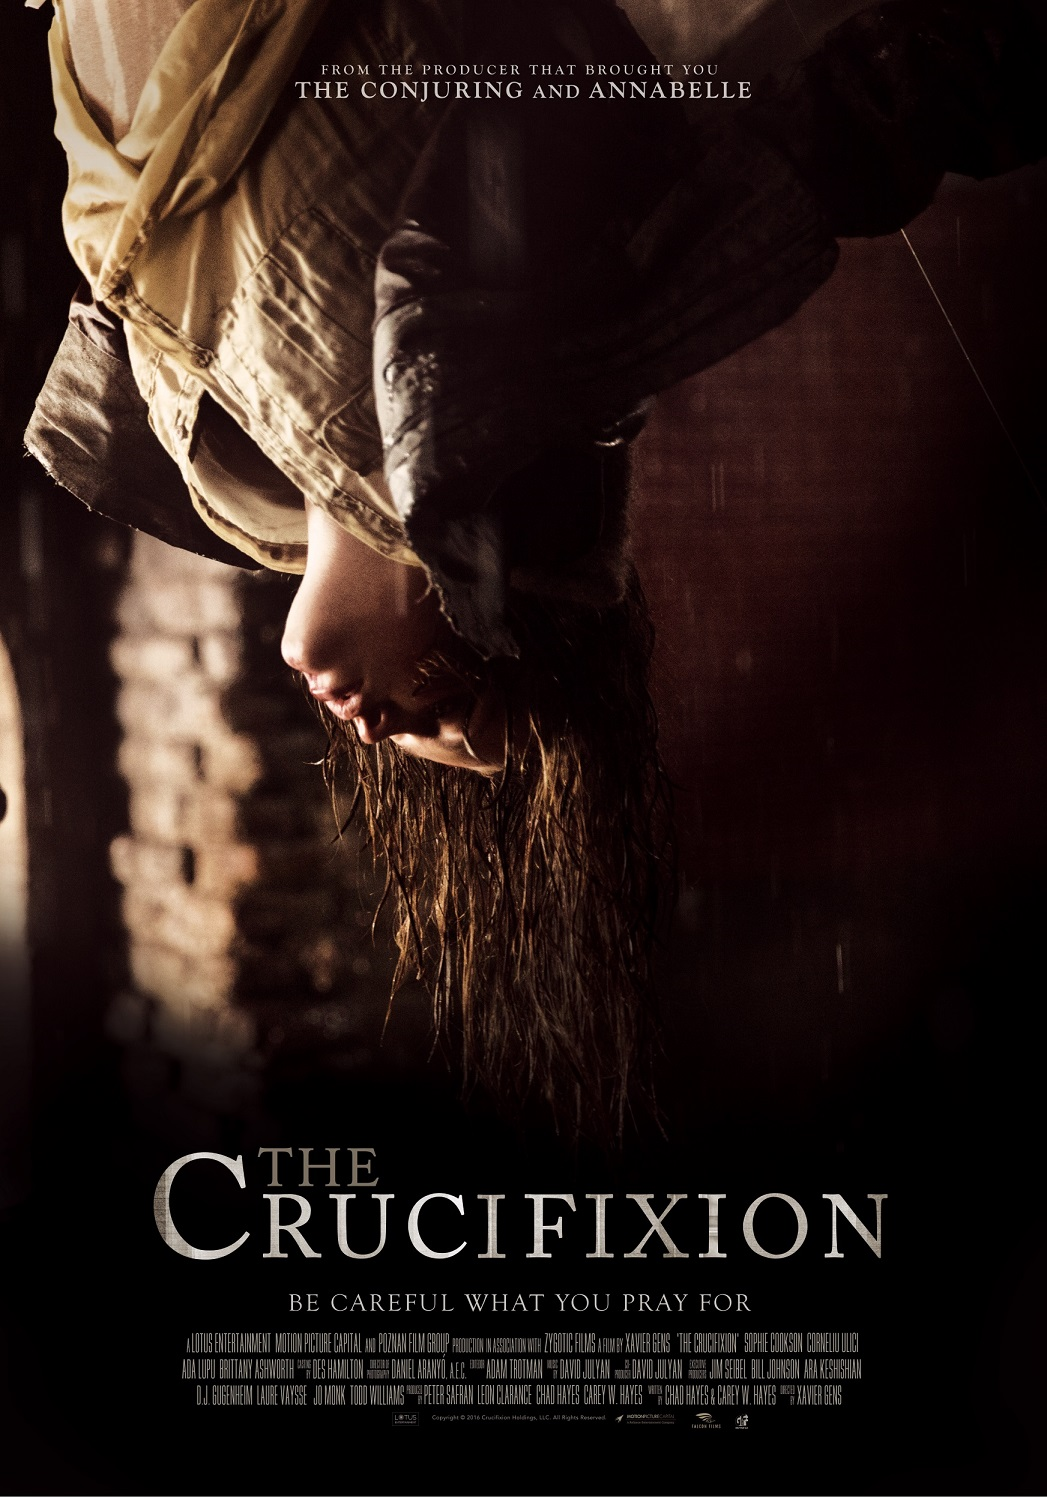 the crucifixion movie poster teaser trailer. Black Bedroom Furniture Sets. Home Design Ideas